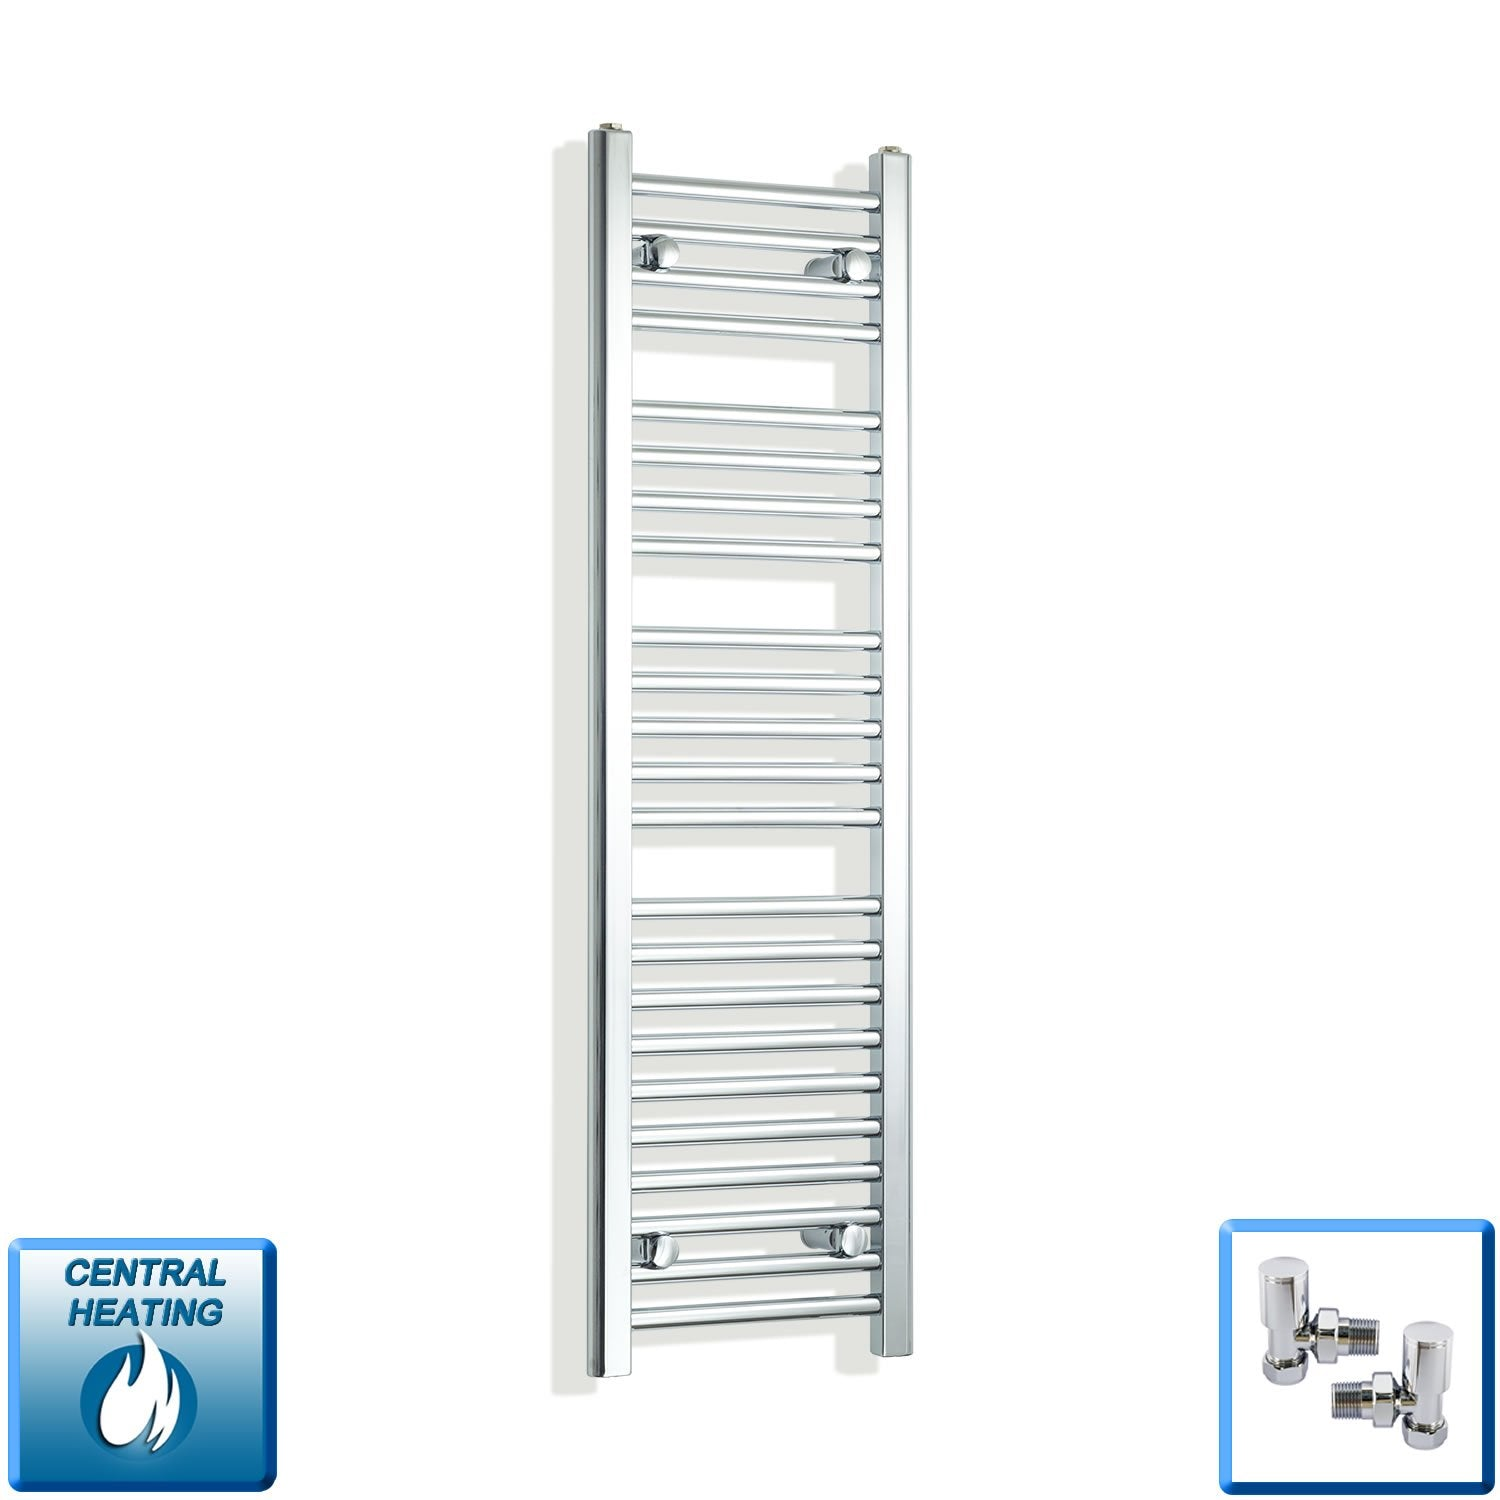 300mm Wide 1200mm High Flat Chrome Heated Towel Rail Radiator,With Angled Valve